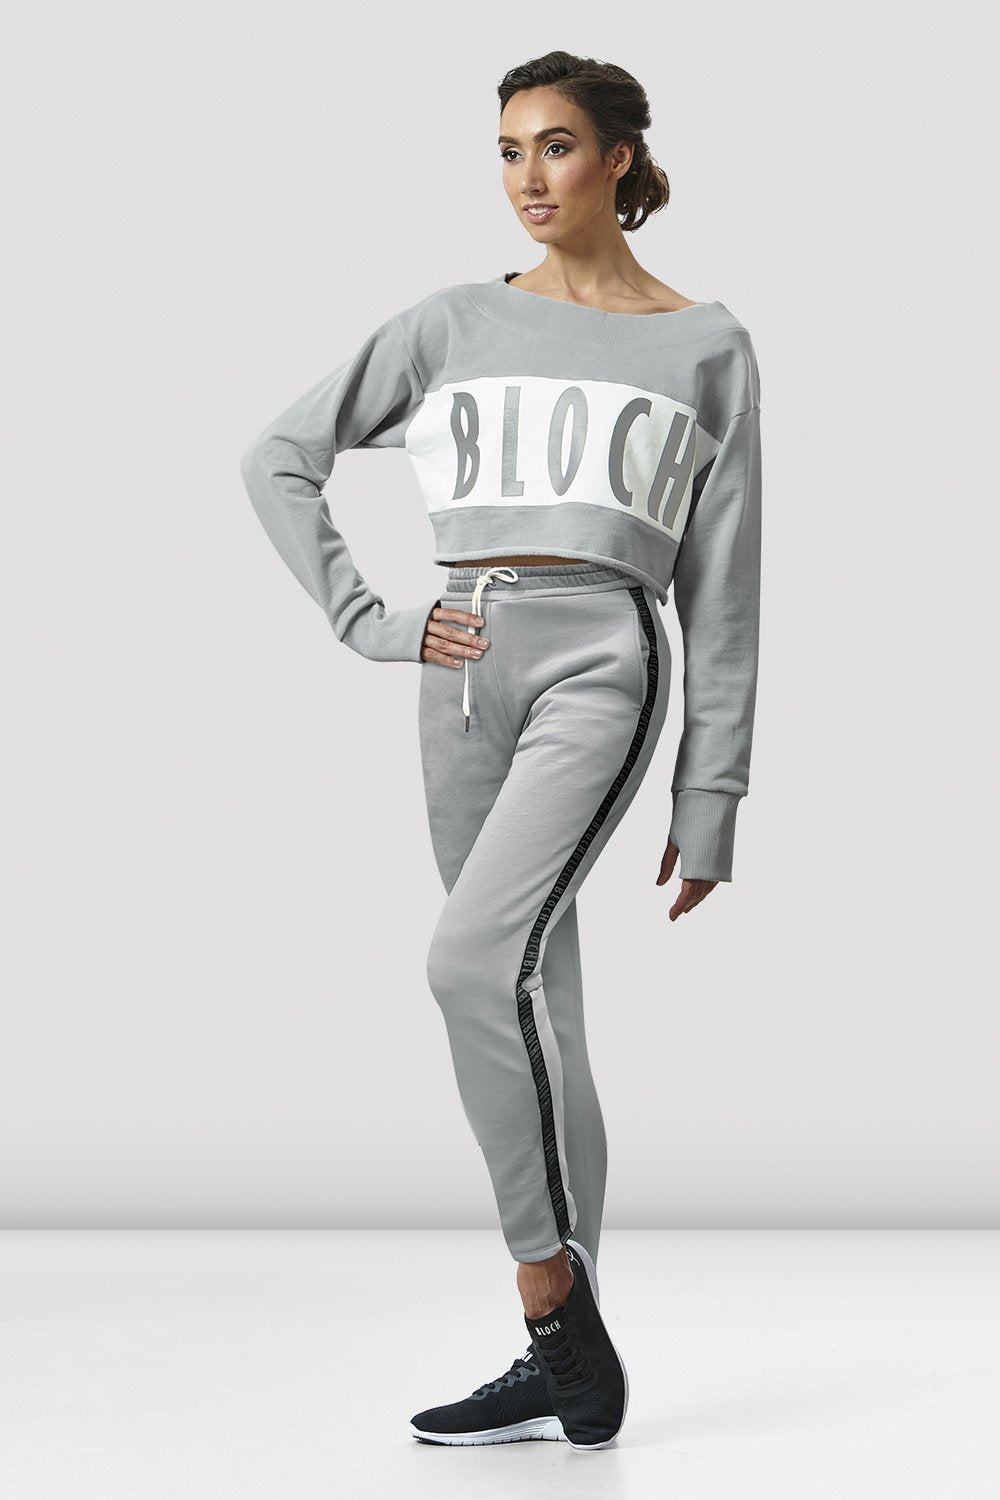 Ladies High Waist Logo Track Pant - BLOCH US